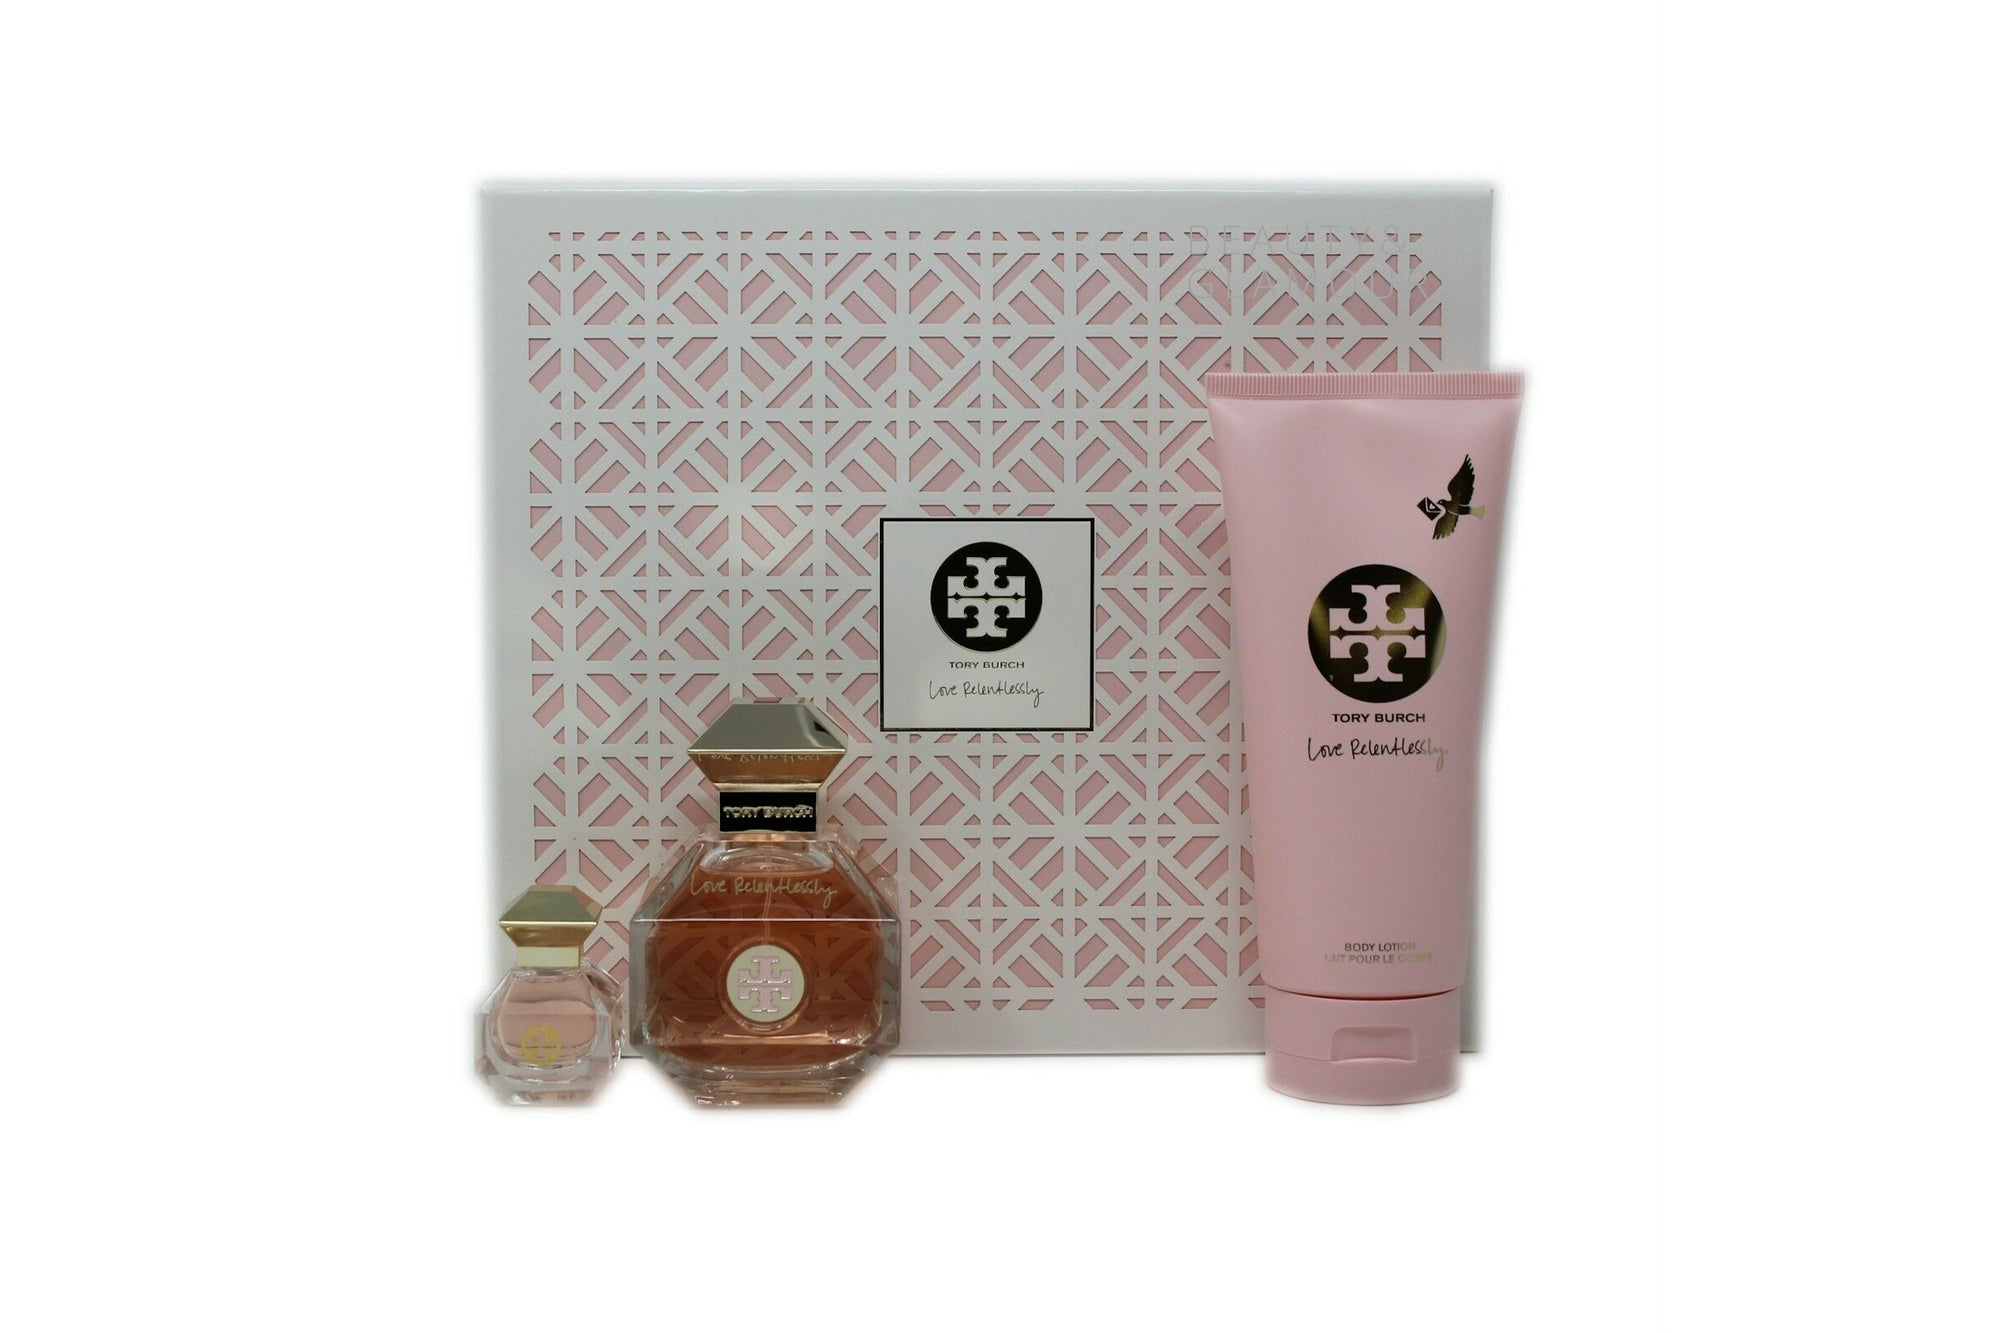 TORY BURCH LOVE RELENTLESSLY EAU DE PARFUM SPRAY 100 ML/3.4 FL.OZ.